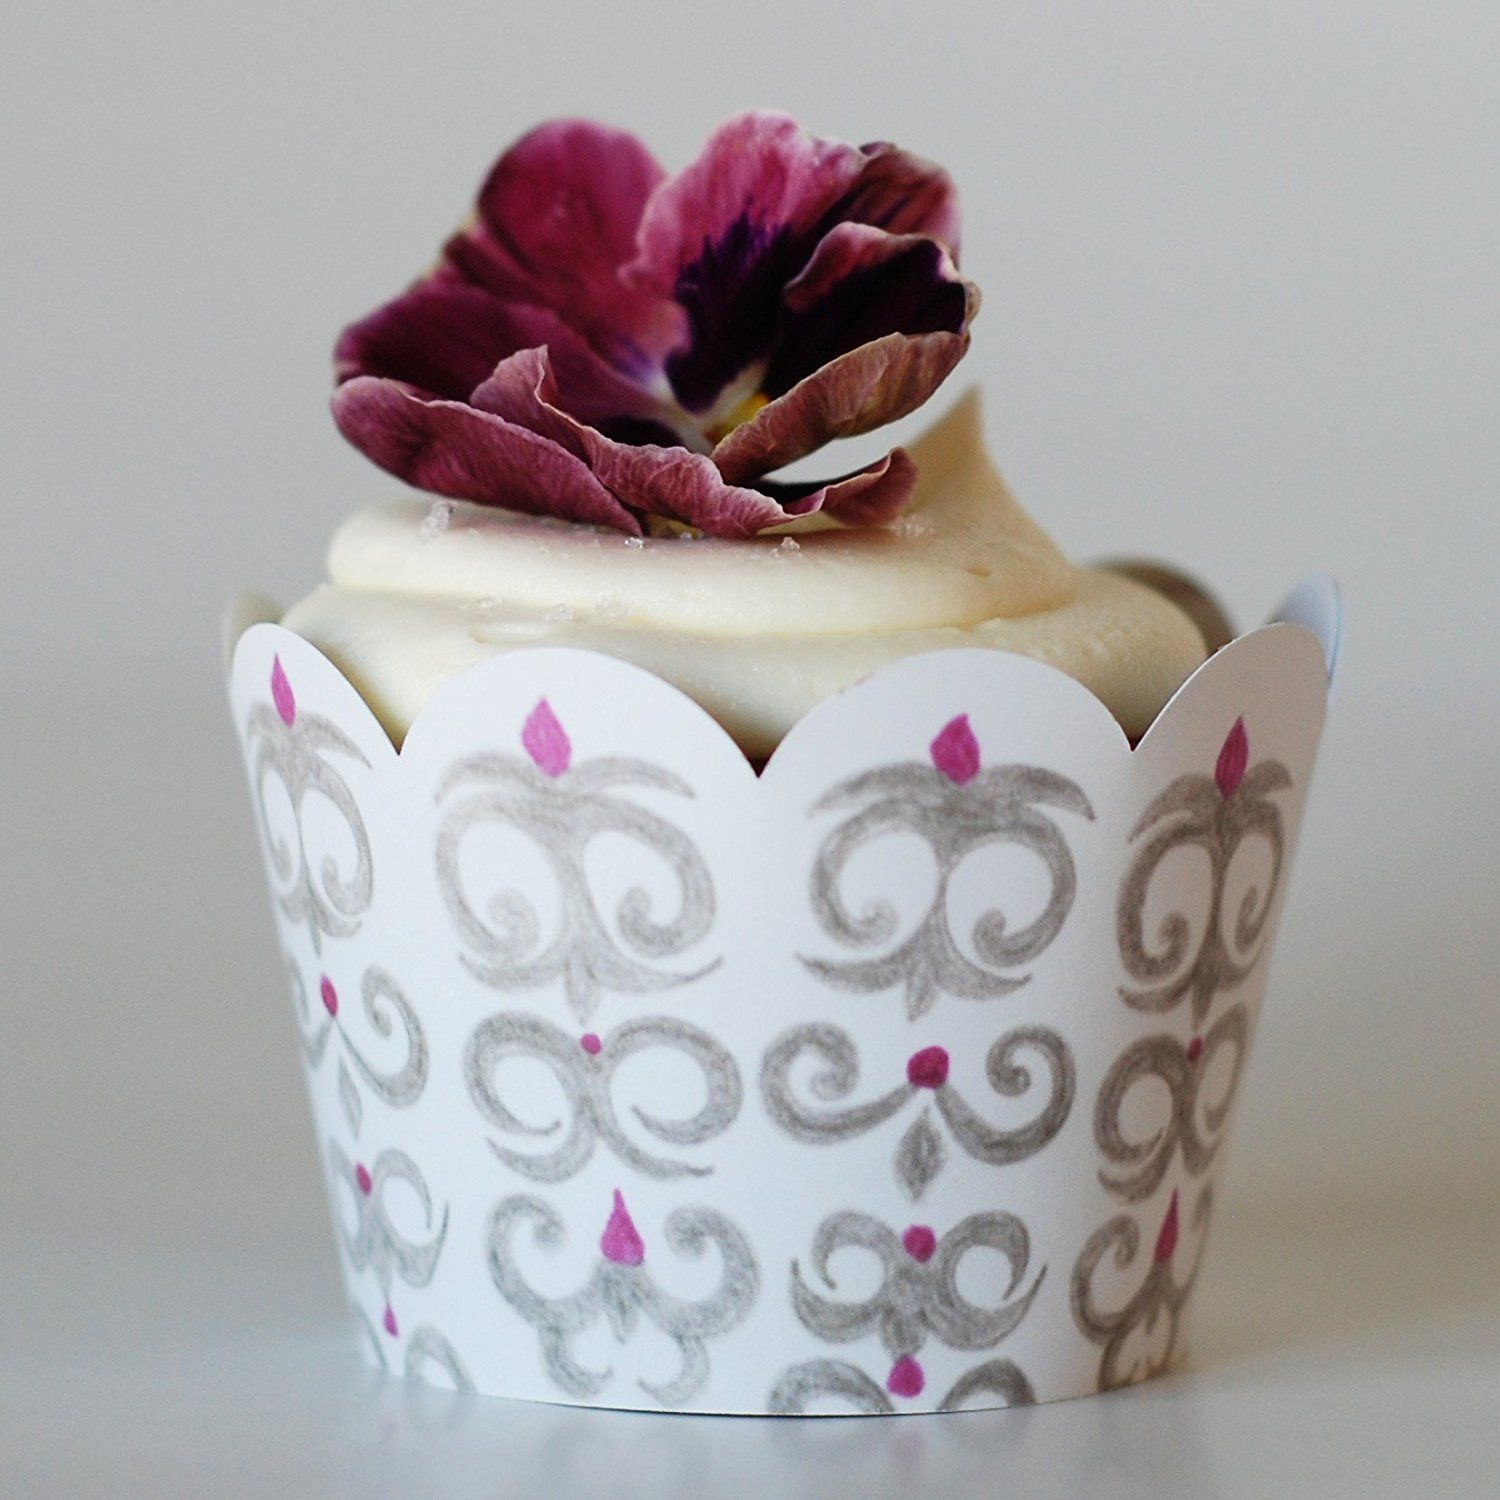 Amazon.com: Winter Wonderland Wedding Cupcake Wrappers, White, Silver Gray, and Plum Purple Damask Pattern, 36 Reversible Wraps, Confetti Couture Party Supplies: Kitchen & Dining